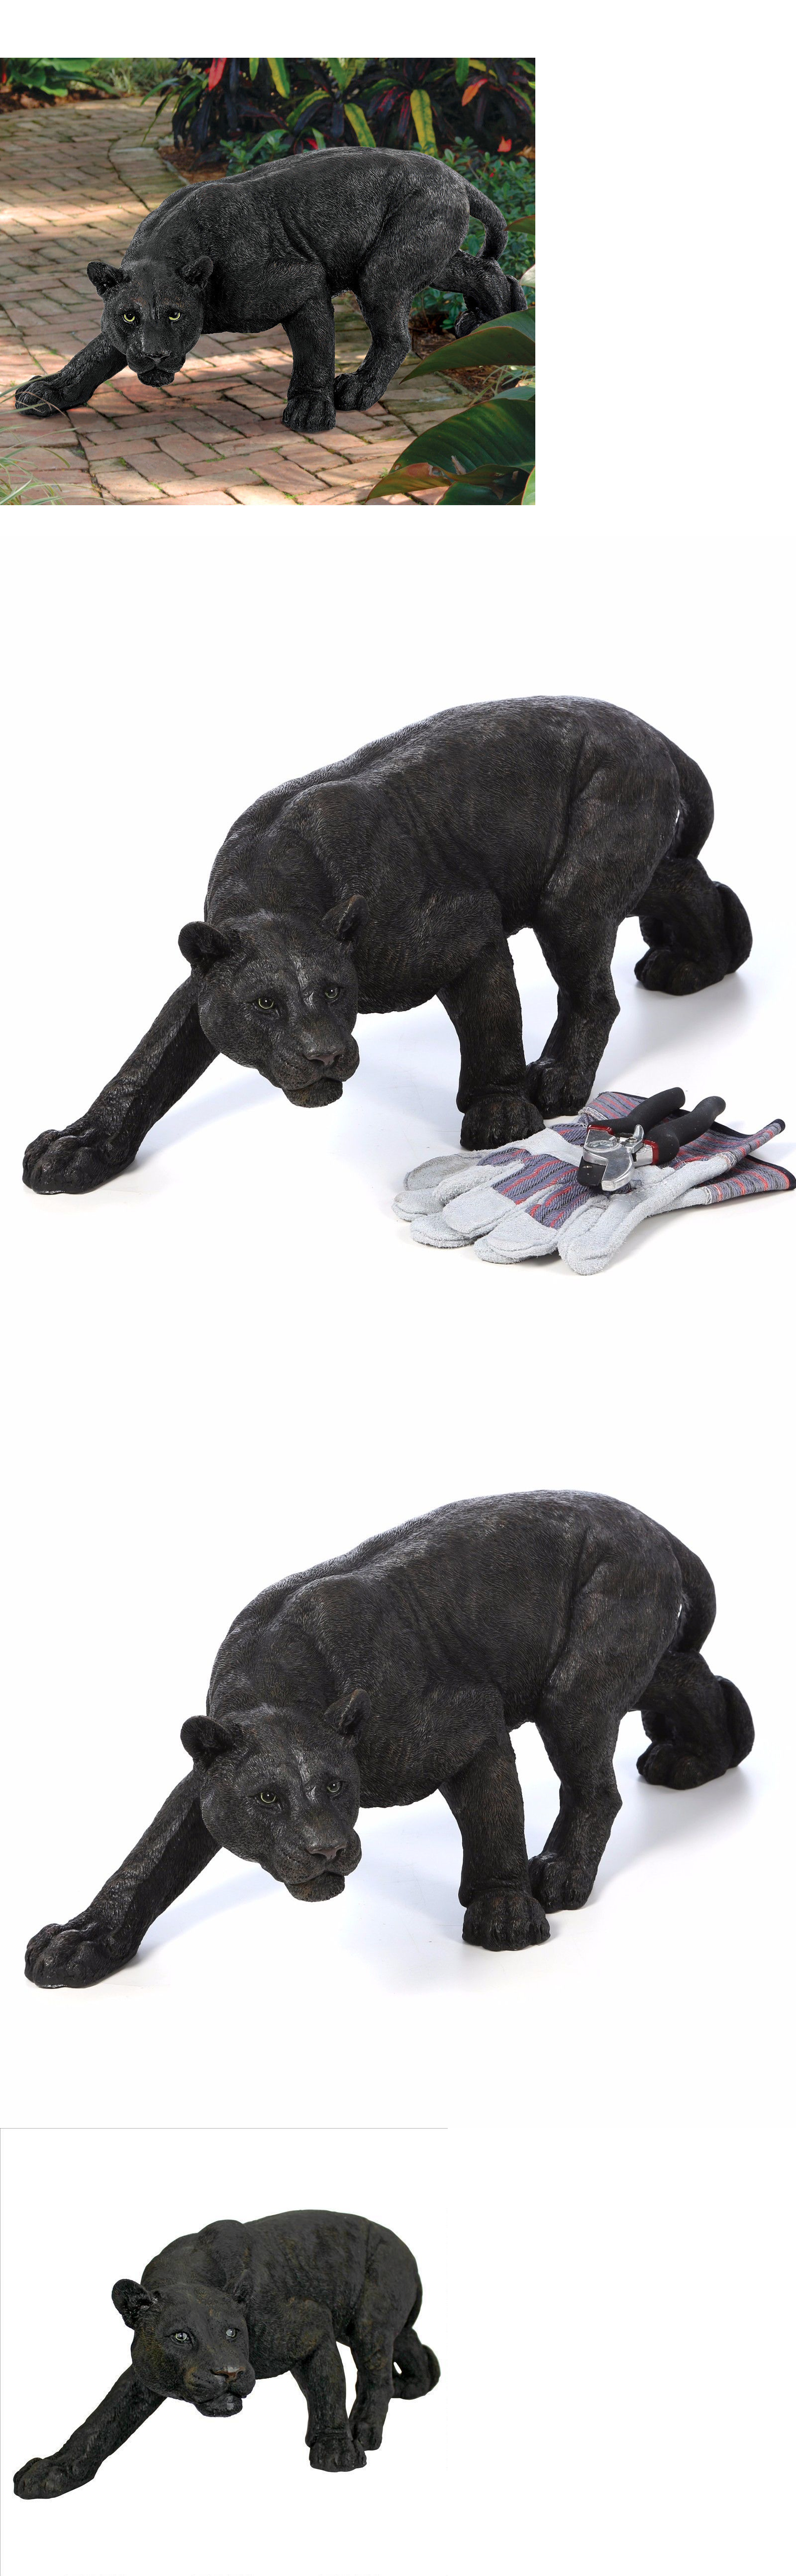 Garden decor statues  Statues and Lawn Ornaments  Shadowed Predator Panther Statue